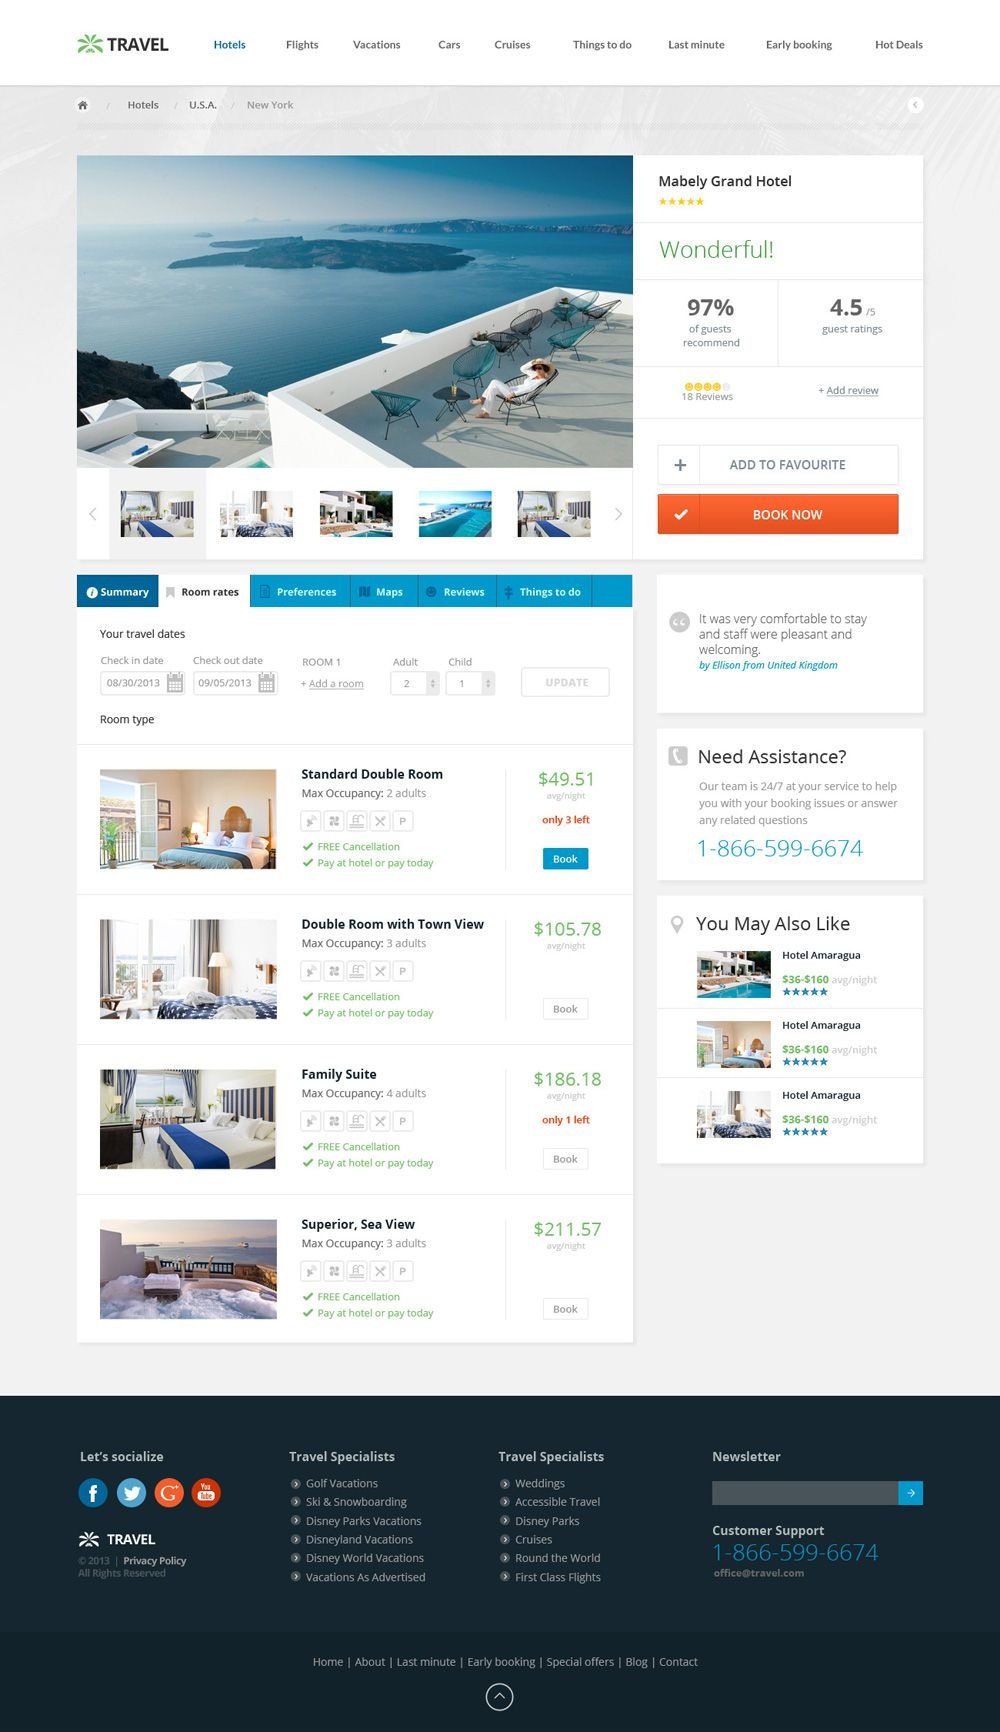 Travel Agency Responsive Hotel Online Booking Template on Behance ...